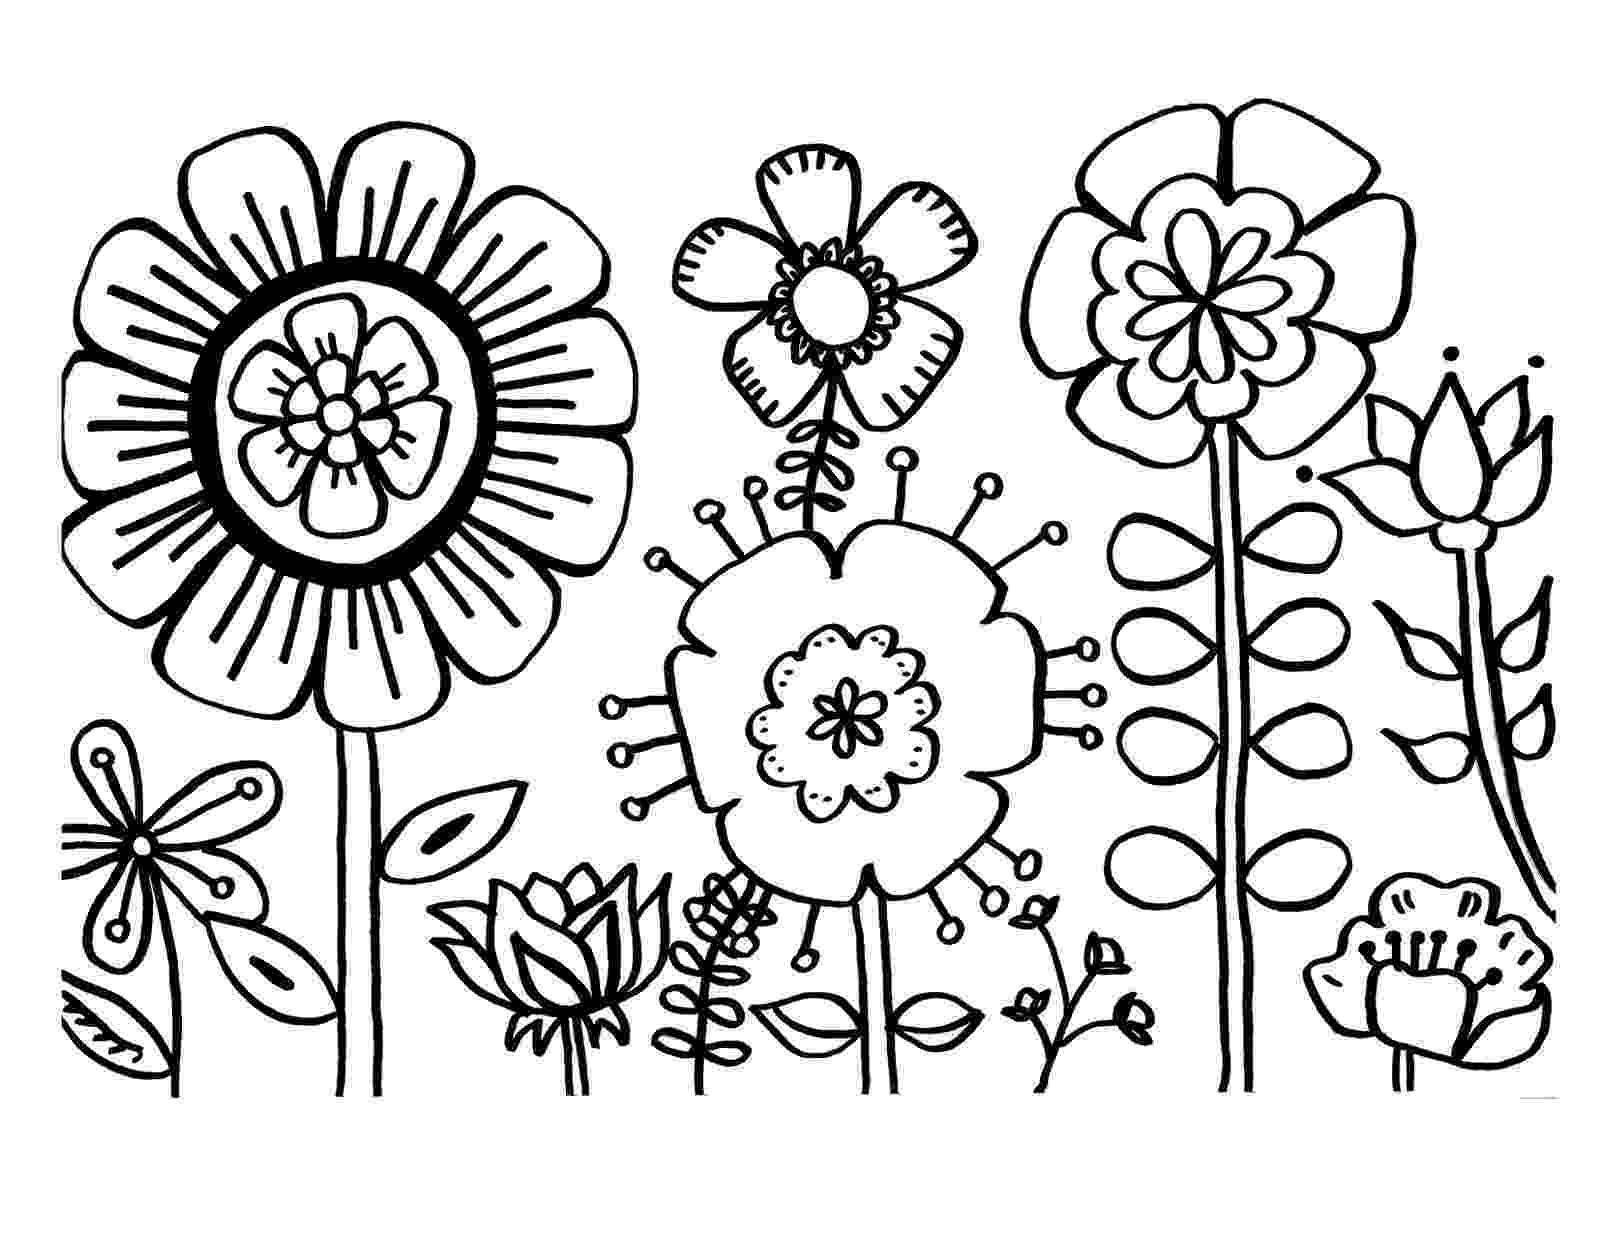 coloring flower pictures free printable flower coloring pages for kids cool2bkids coloring flower pictures 1 1